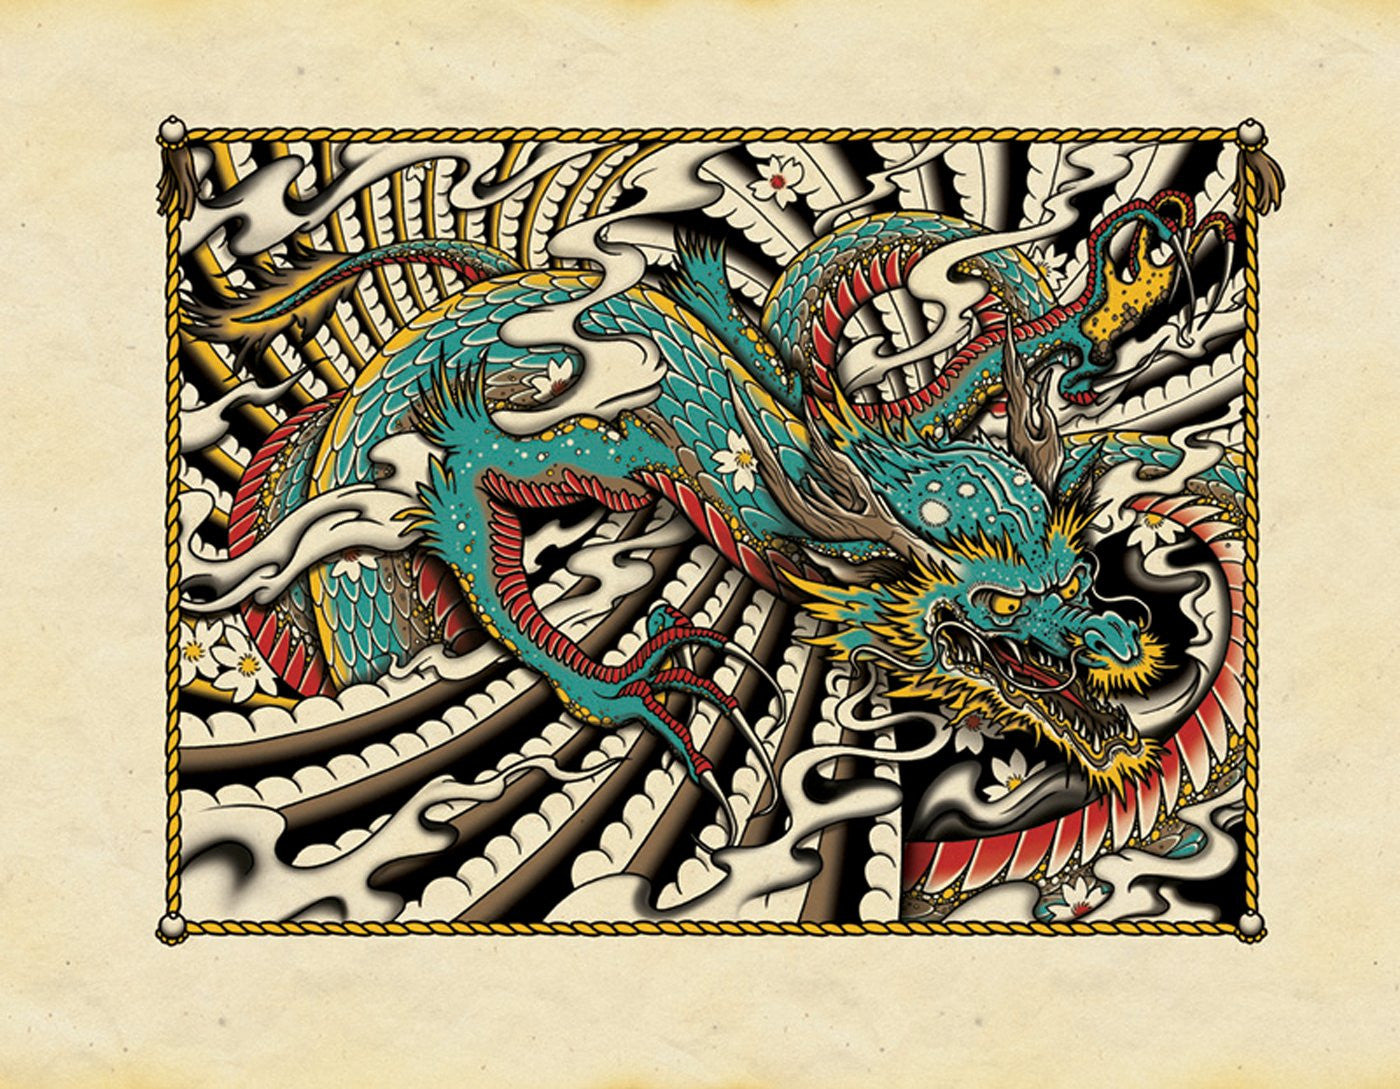 The tattoo coloring book megamunden - The Megamunden Tattoo Colouring Book